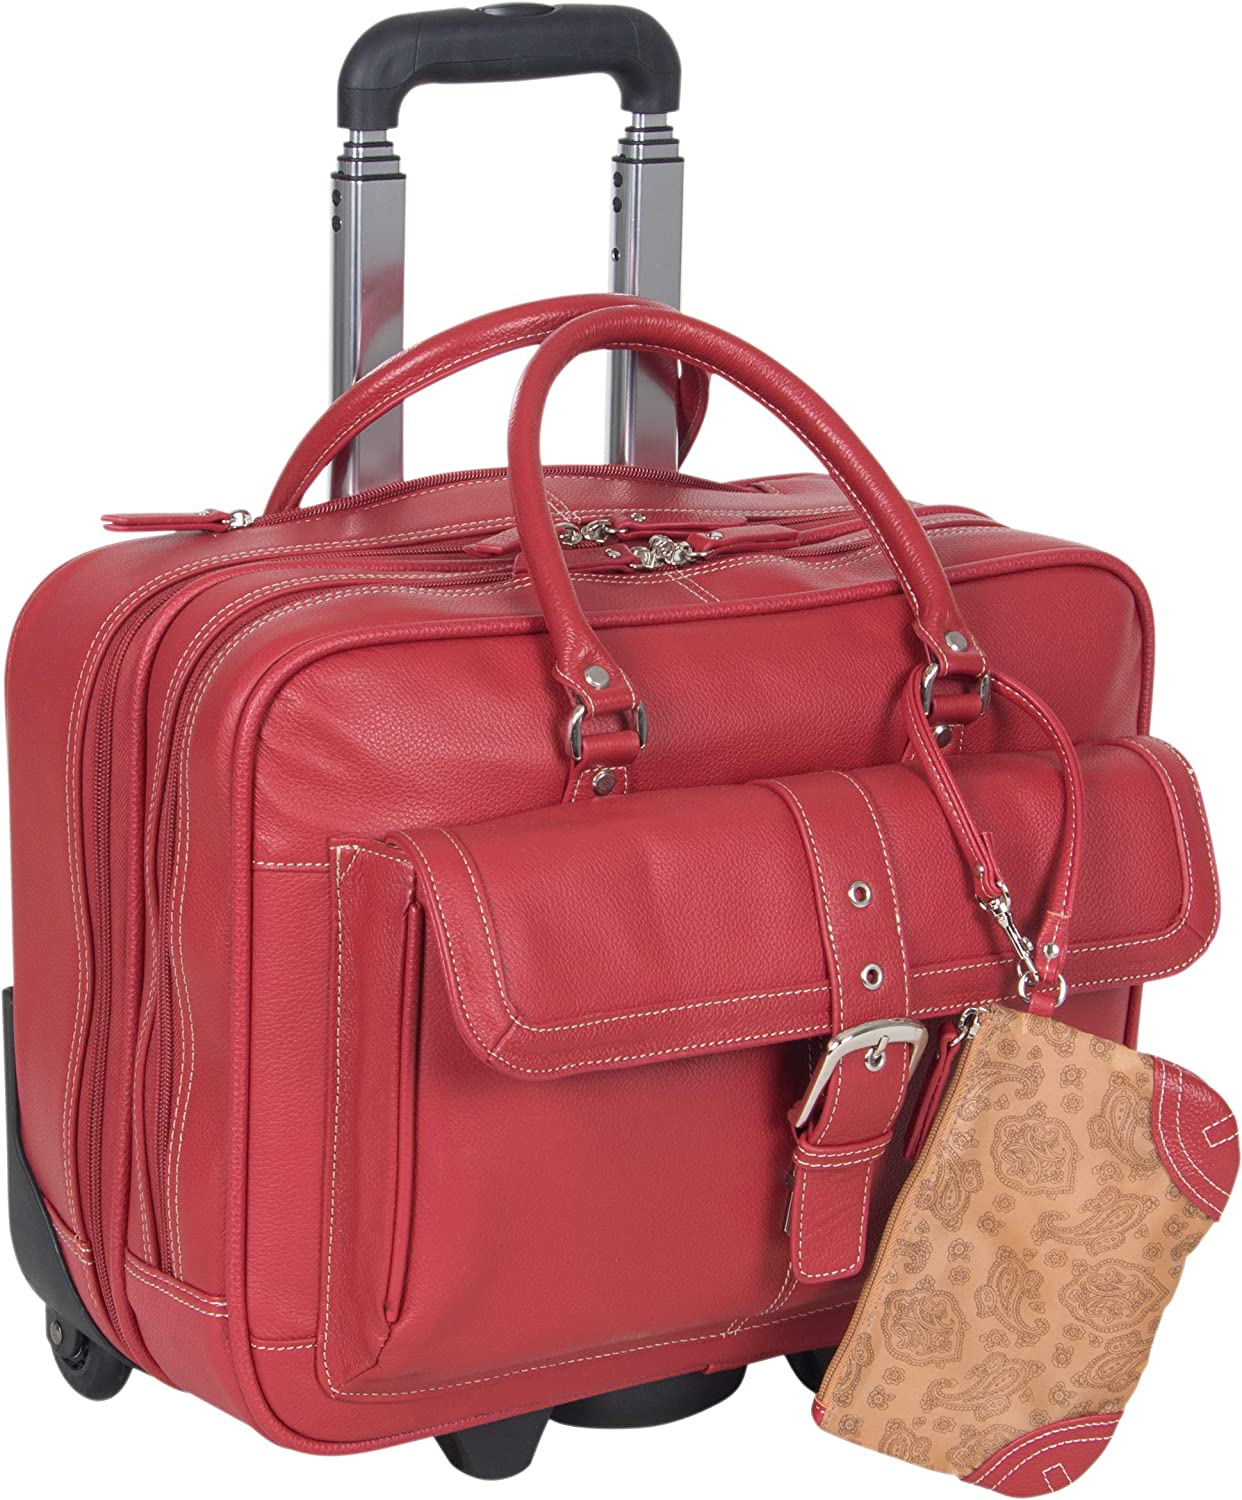 "Heritage Travelware 'Lake View' Women's Pebbled SOHO Leather Multi-Compartment 15.6"" Laptop & Tablet Wheeled Business Portfolio Tote / Overnighter Carry-On, Red"